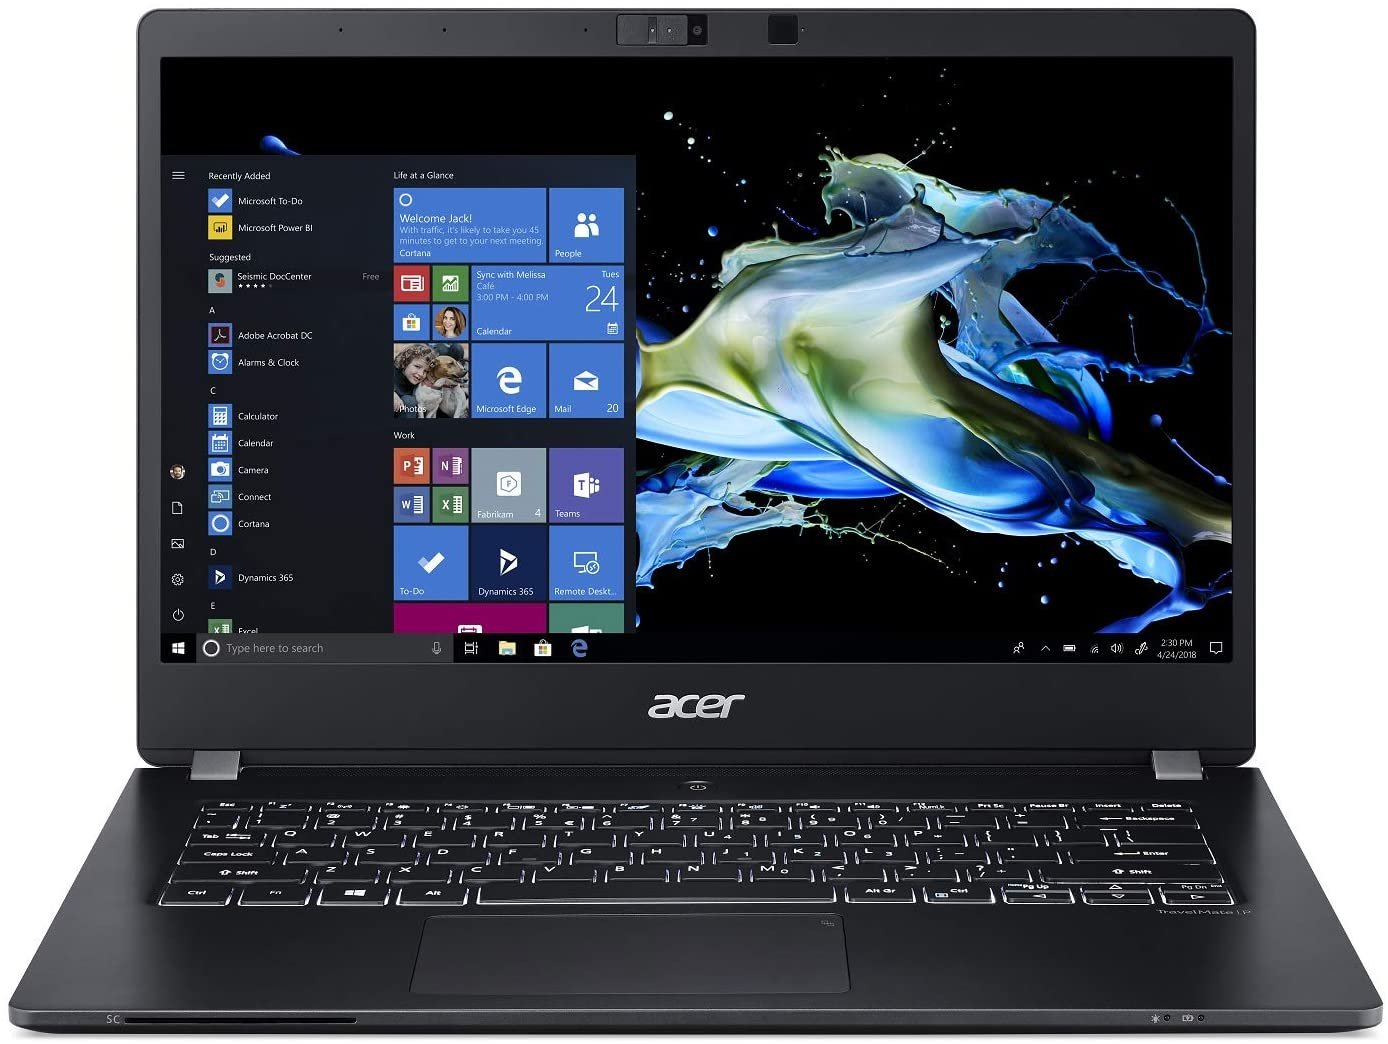 "Acer TravelMate P6 Thin & Light Business Laptop, 14"" FHD IPS, Intel Core i7-8565U, 16GB DDR4, 512GB SSD, 20 Hrs Battery, Win 10 Pro, TMP 2.0, Mil-Spec, Fingerprint Reader, TMP614-51-7294"